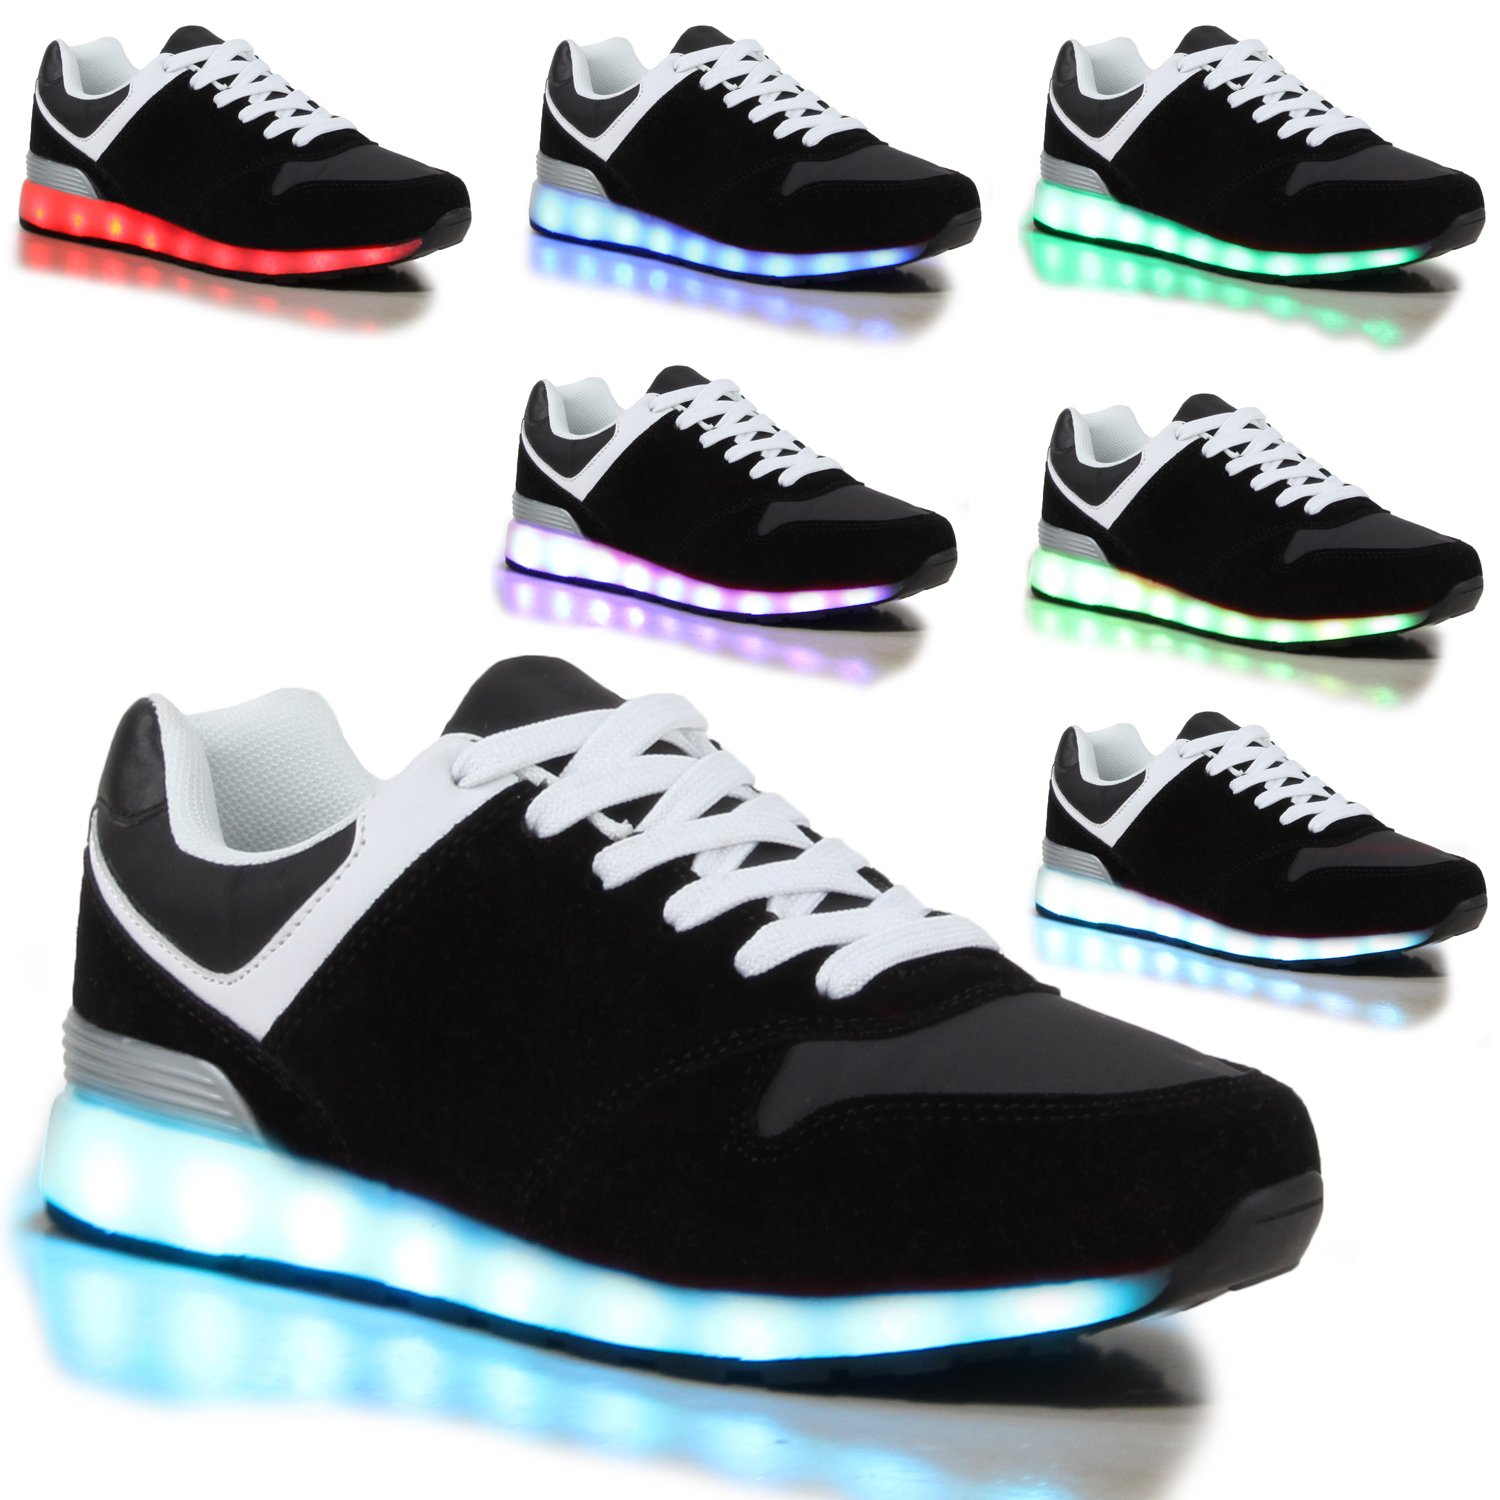 blinkende damen sneakers high led light farbwechsel schuhe led licht 78754 ebay. Black Bedroom Furniture Sets. Home Design Ideas